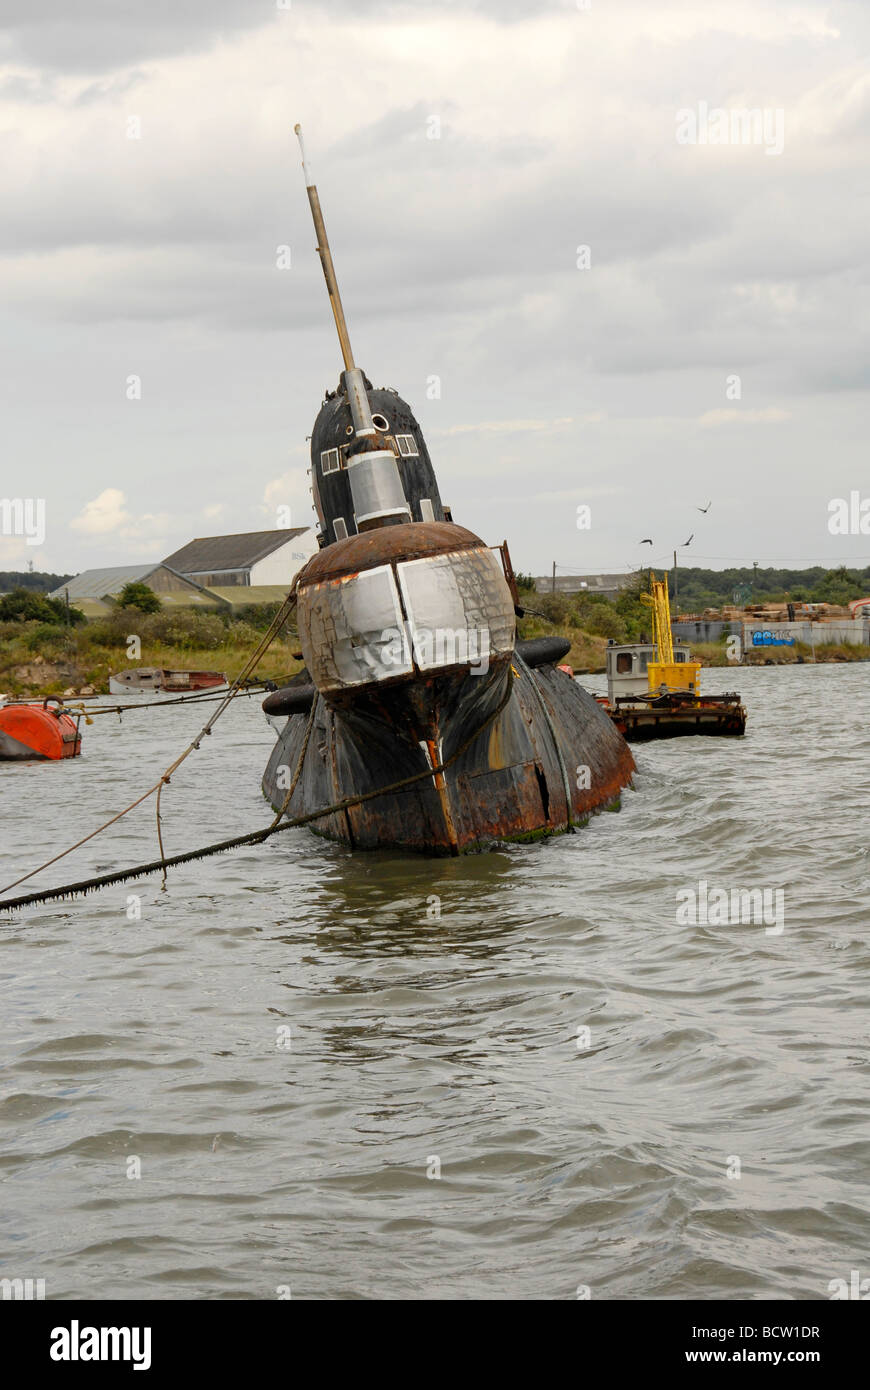 Derelict Russian submarine moored on river Medway, Rochester, Kent, England - Stock Image